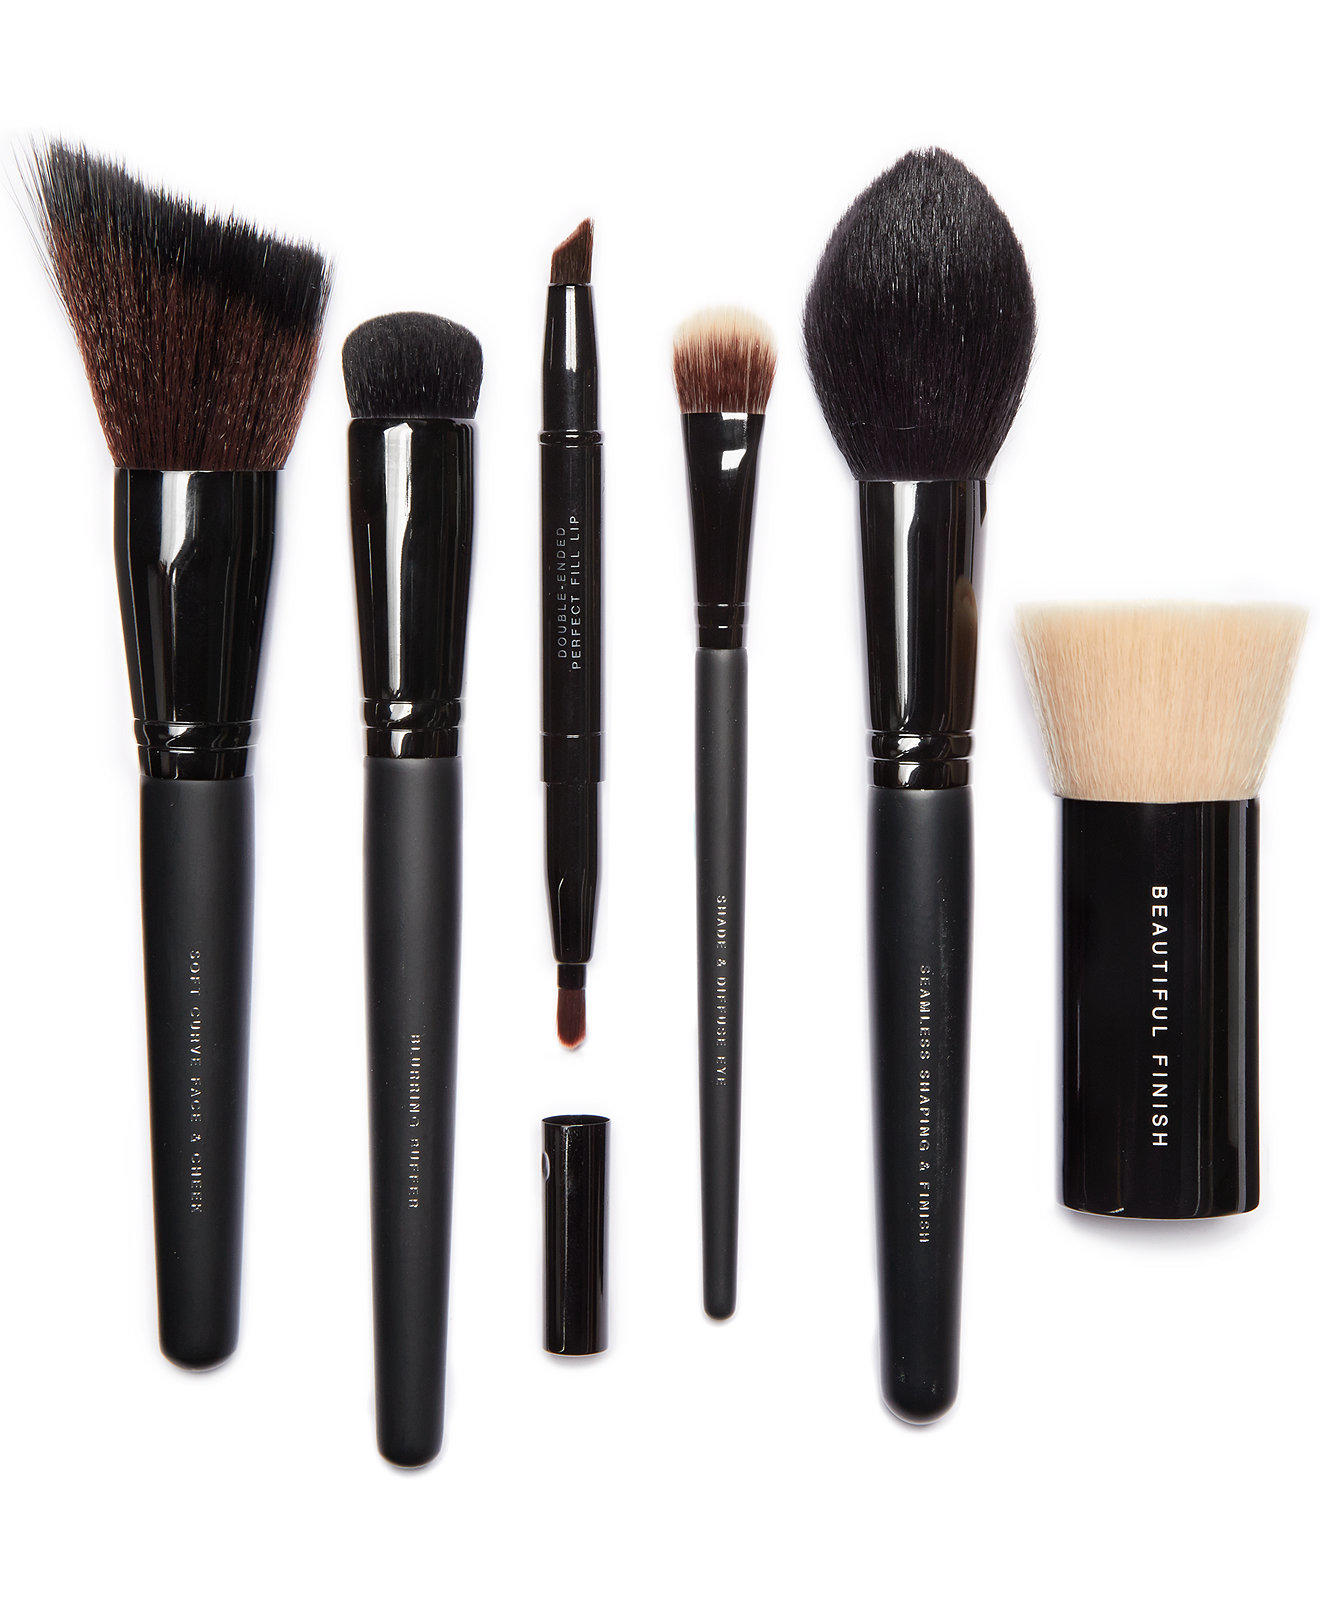 Bare Escentuals Bareminerals Brush Macys Beauty Scene